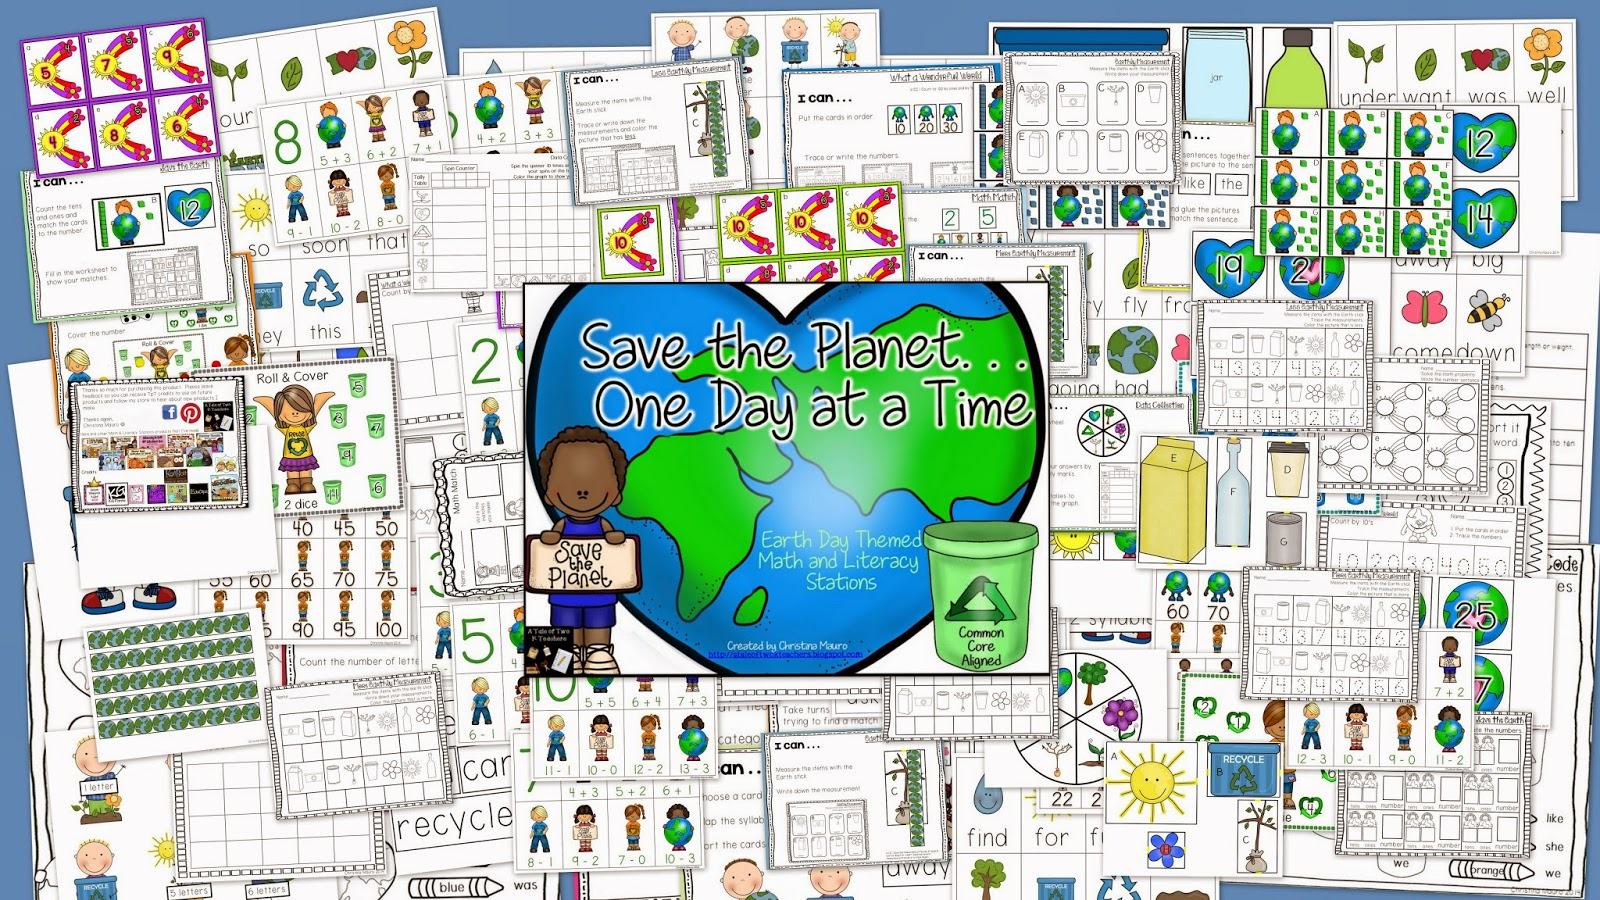 http://www.teacherspayteachers.com/Product/Save-the-PlanetOne-Day-at-a-Time-Earth-Day-Math-Literacy-Stations-636154